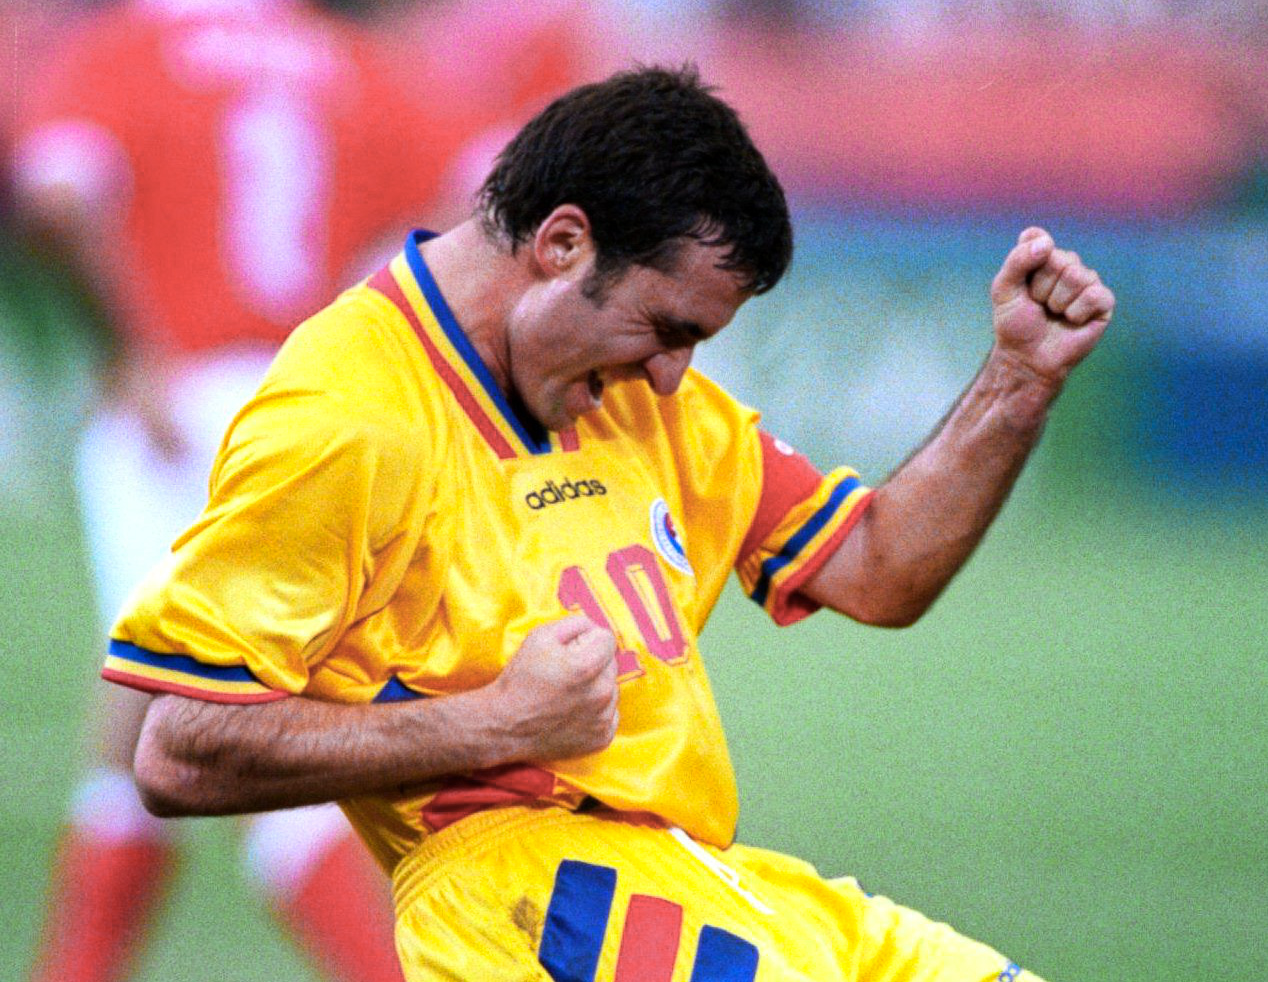 How Gheorghe Hagi rebuilt his career in Serie B with Brescia